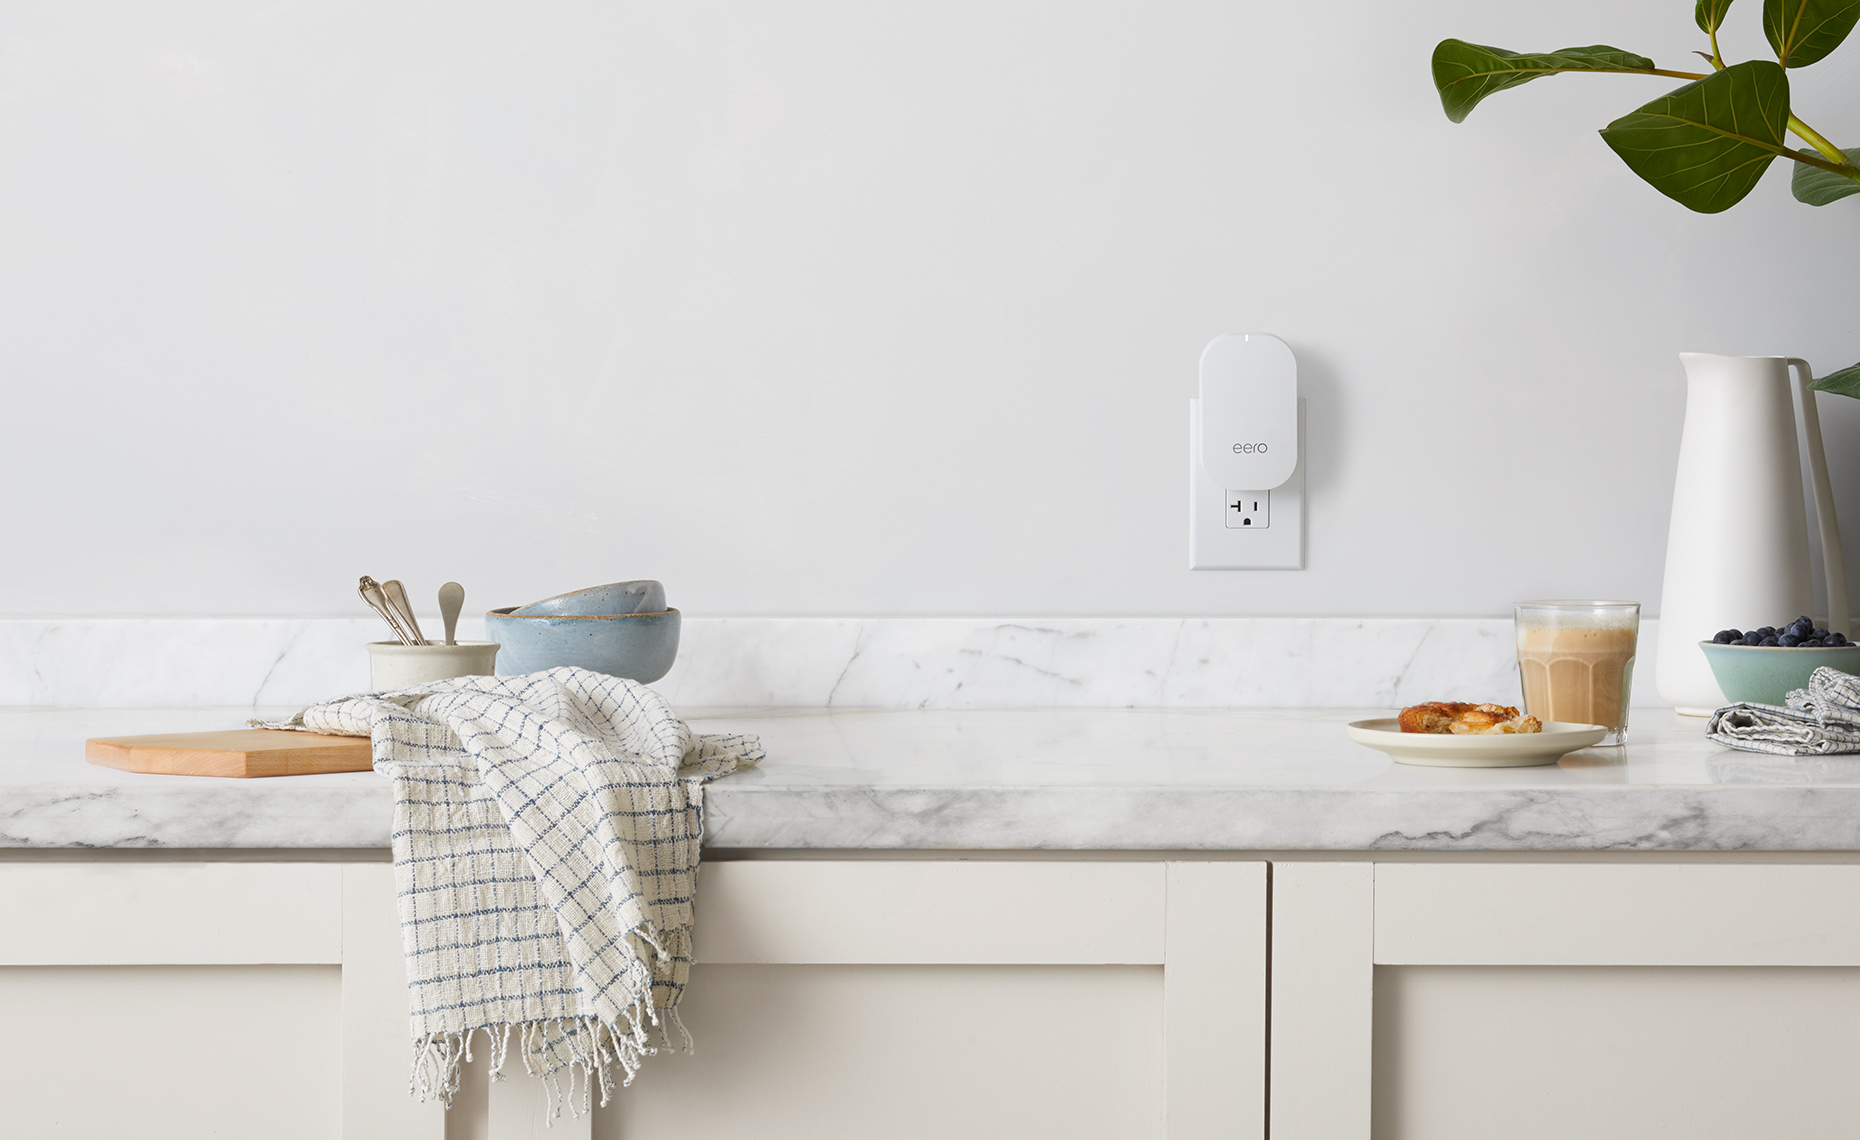 Eero-Kitchen_Berries-And-Plant-R2